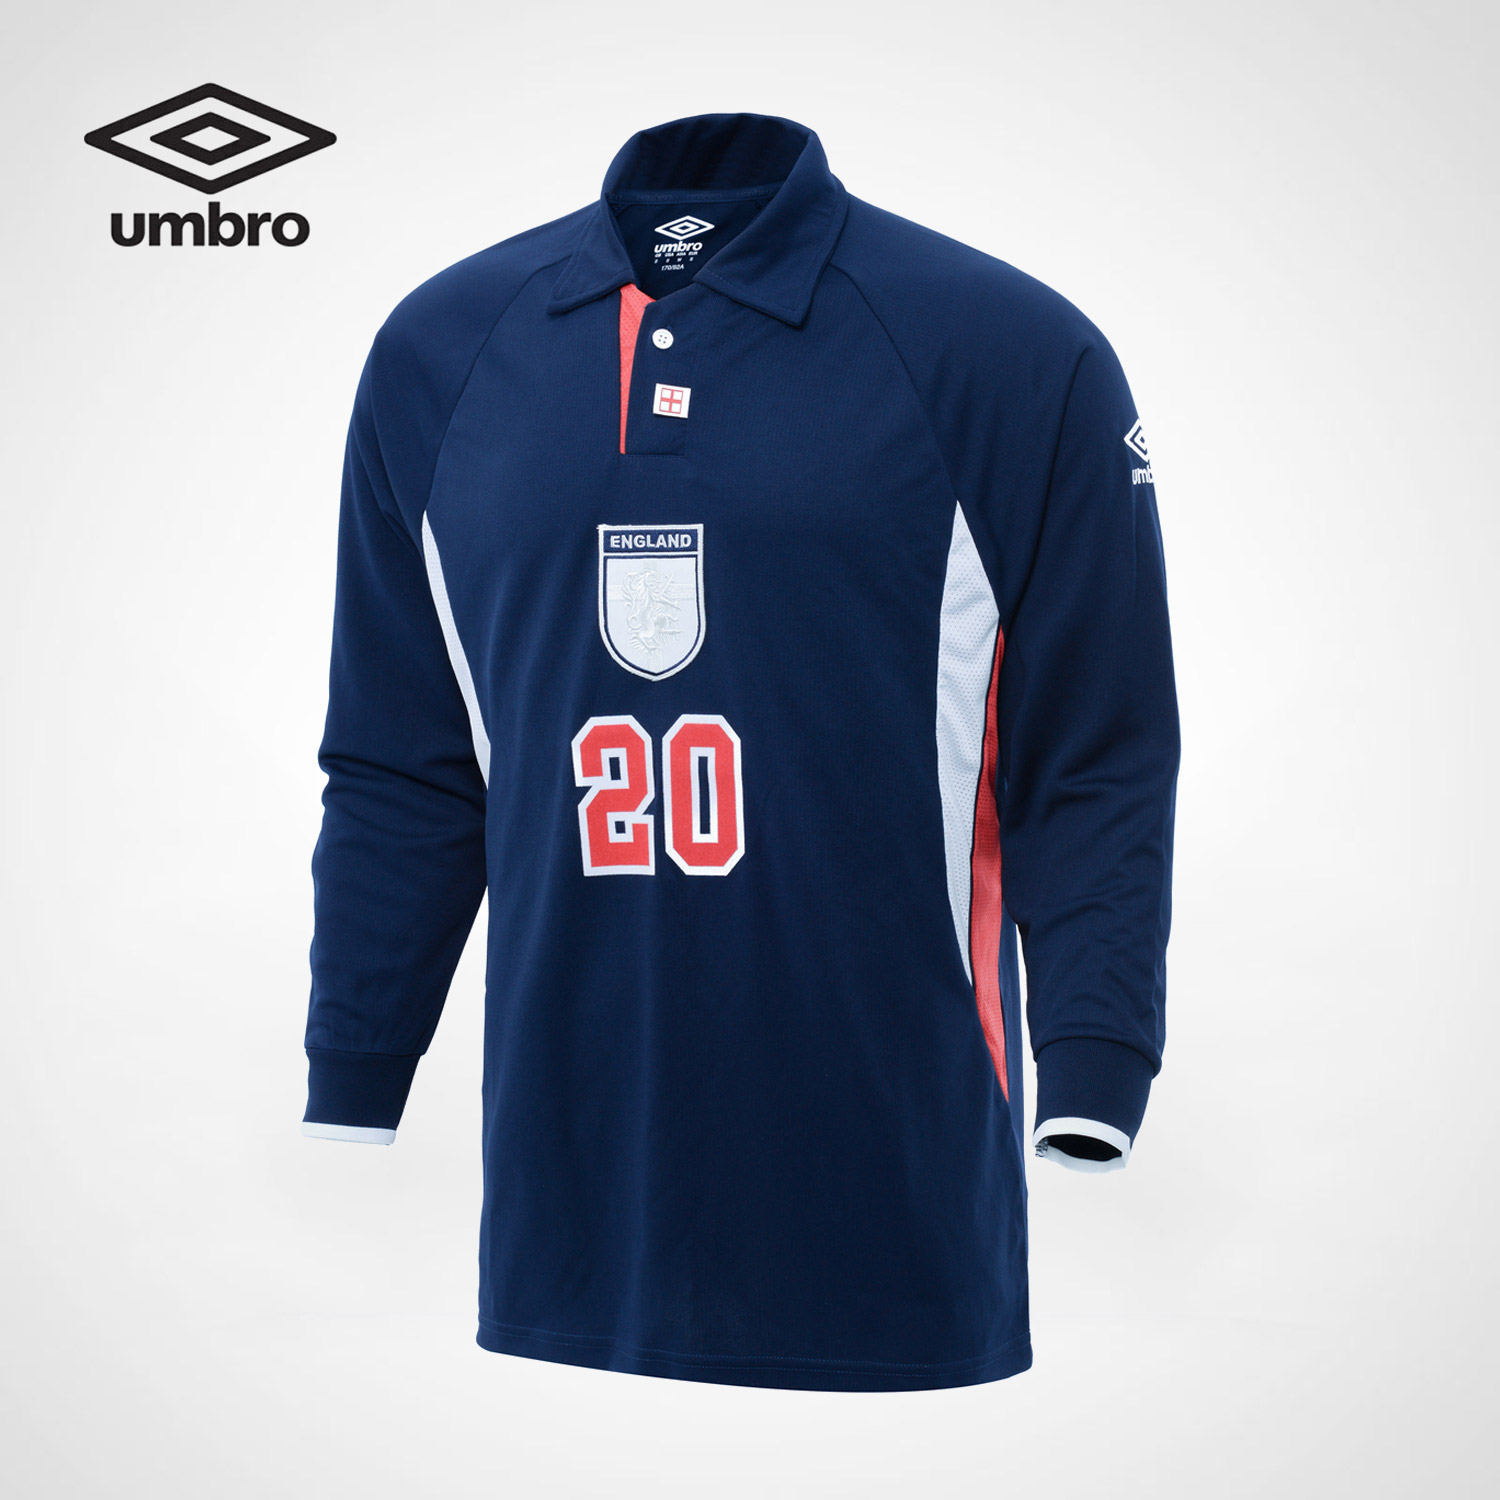 Umbro New Erwin England Classic Retro Men Sports Long Sleeved Polo Sweater POLO Shirt Me ...